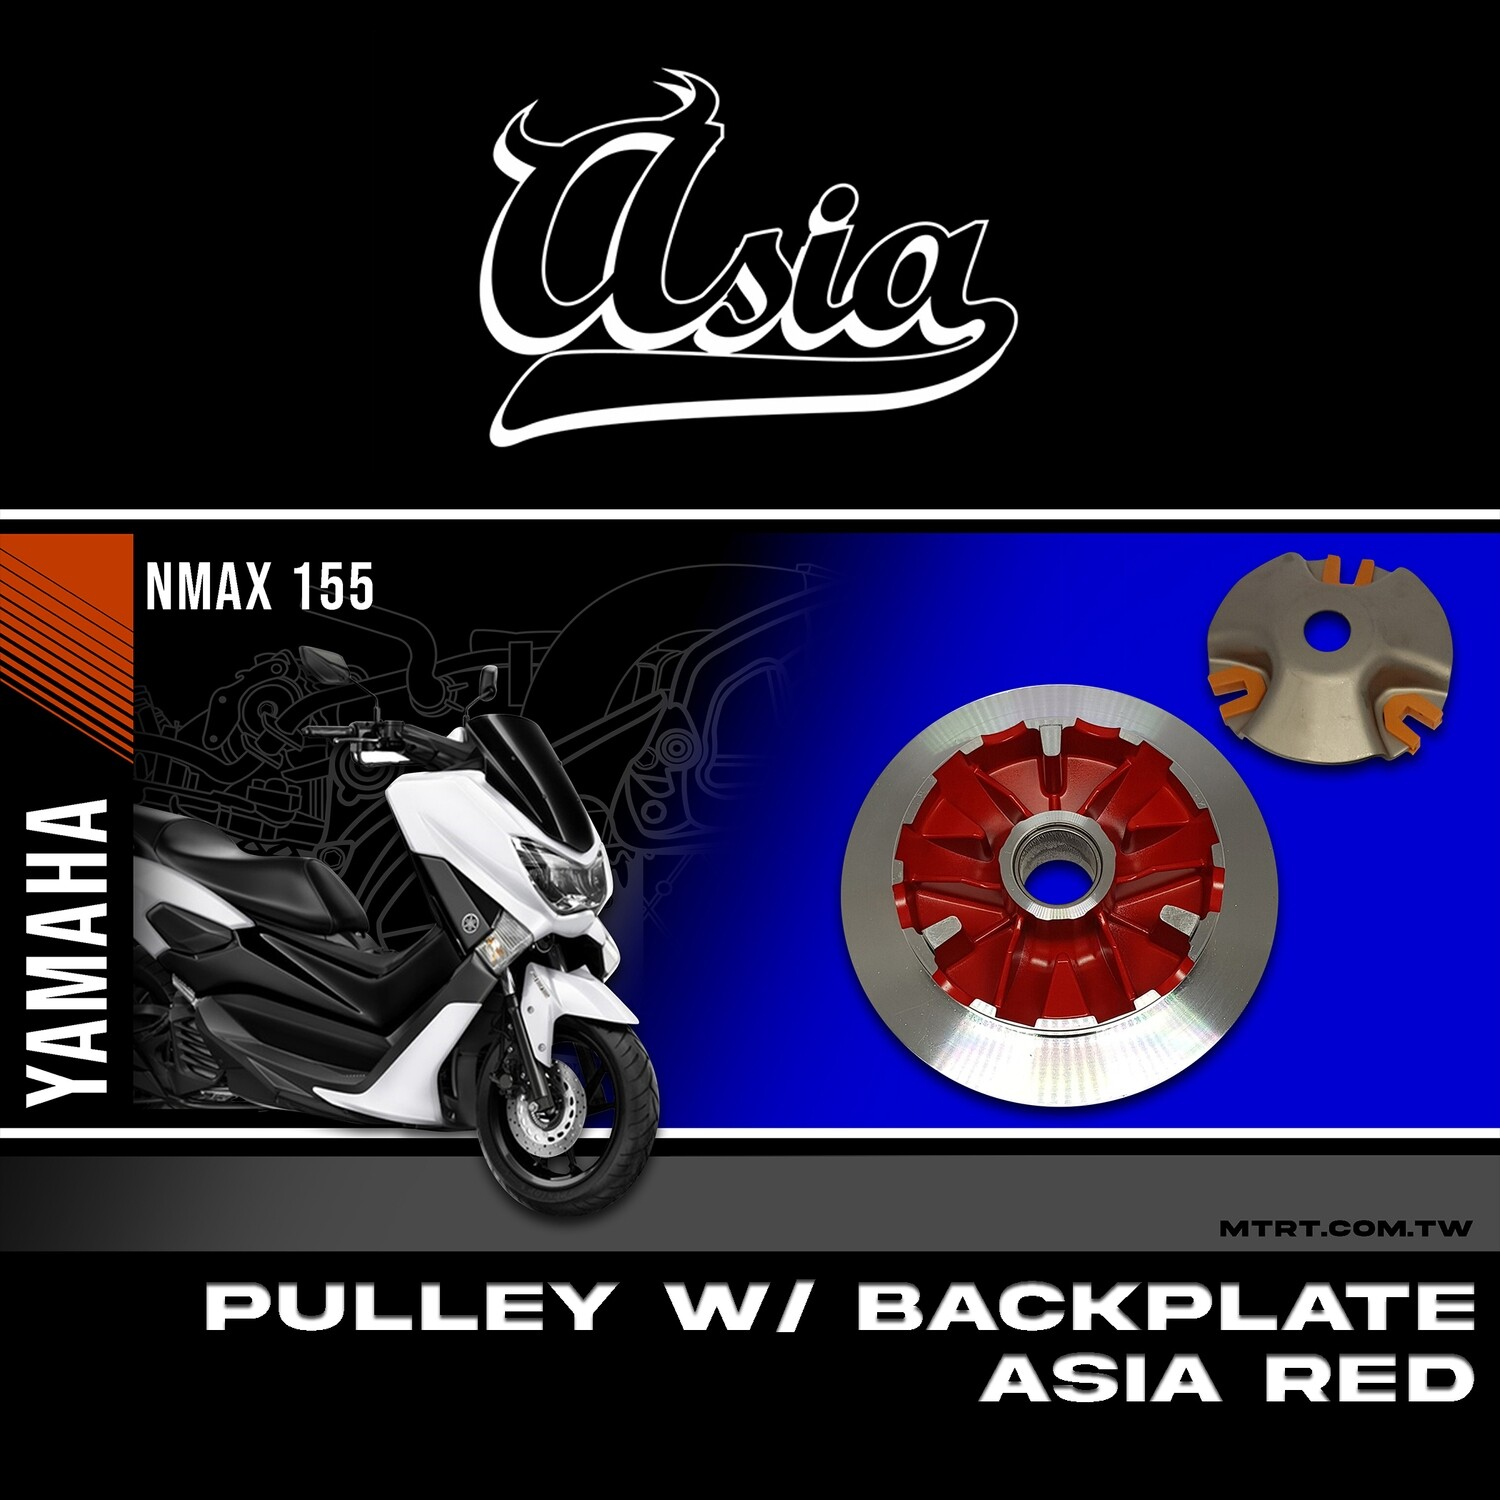 PULLEY W BACK PLATE NMAX 155 ASIA RED